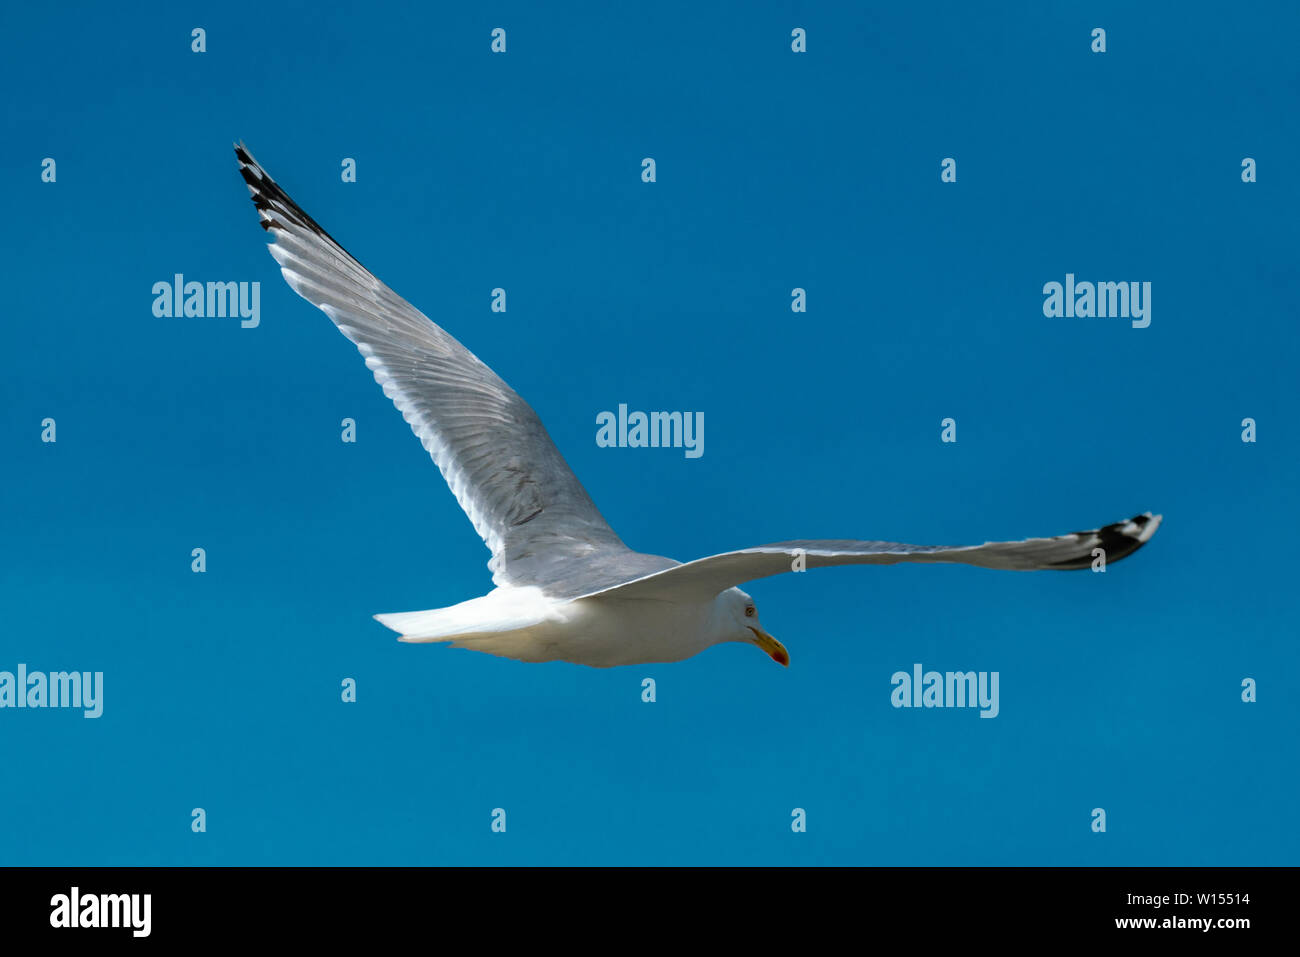 close up of a flying seagull against a blue sky with many details of wings and feathers - Stock Image